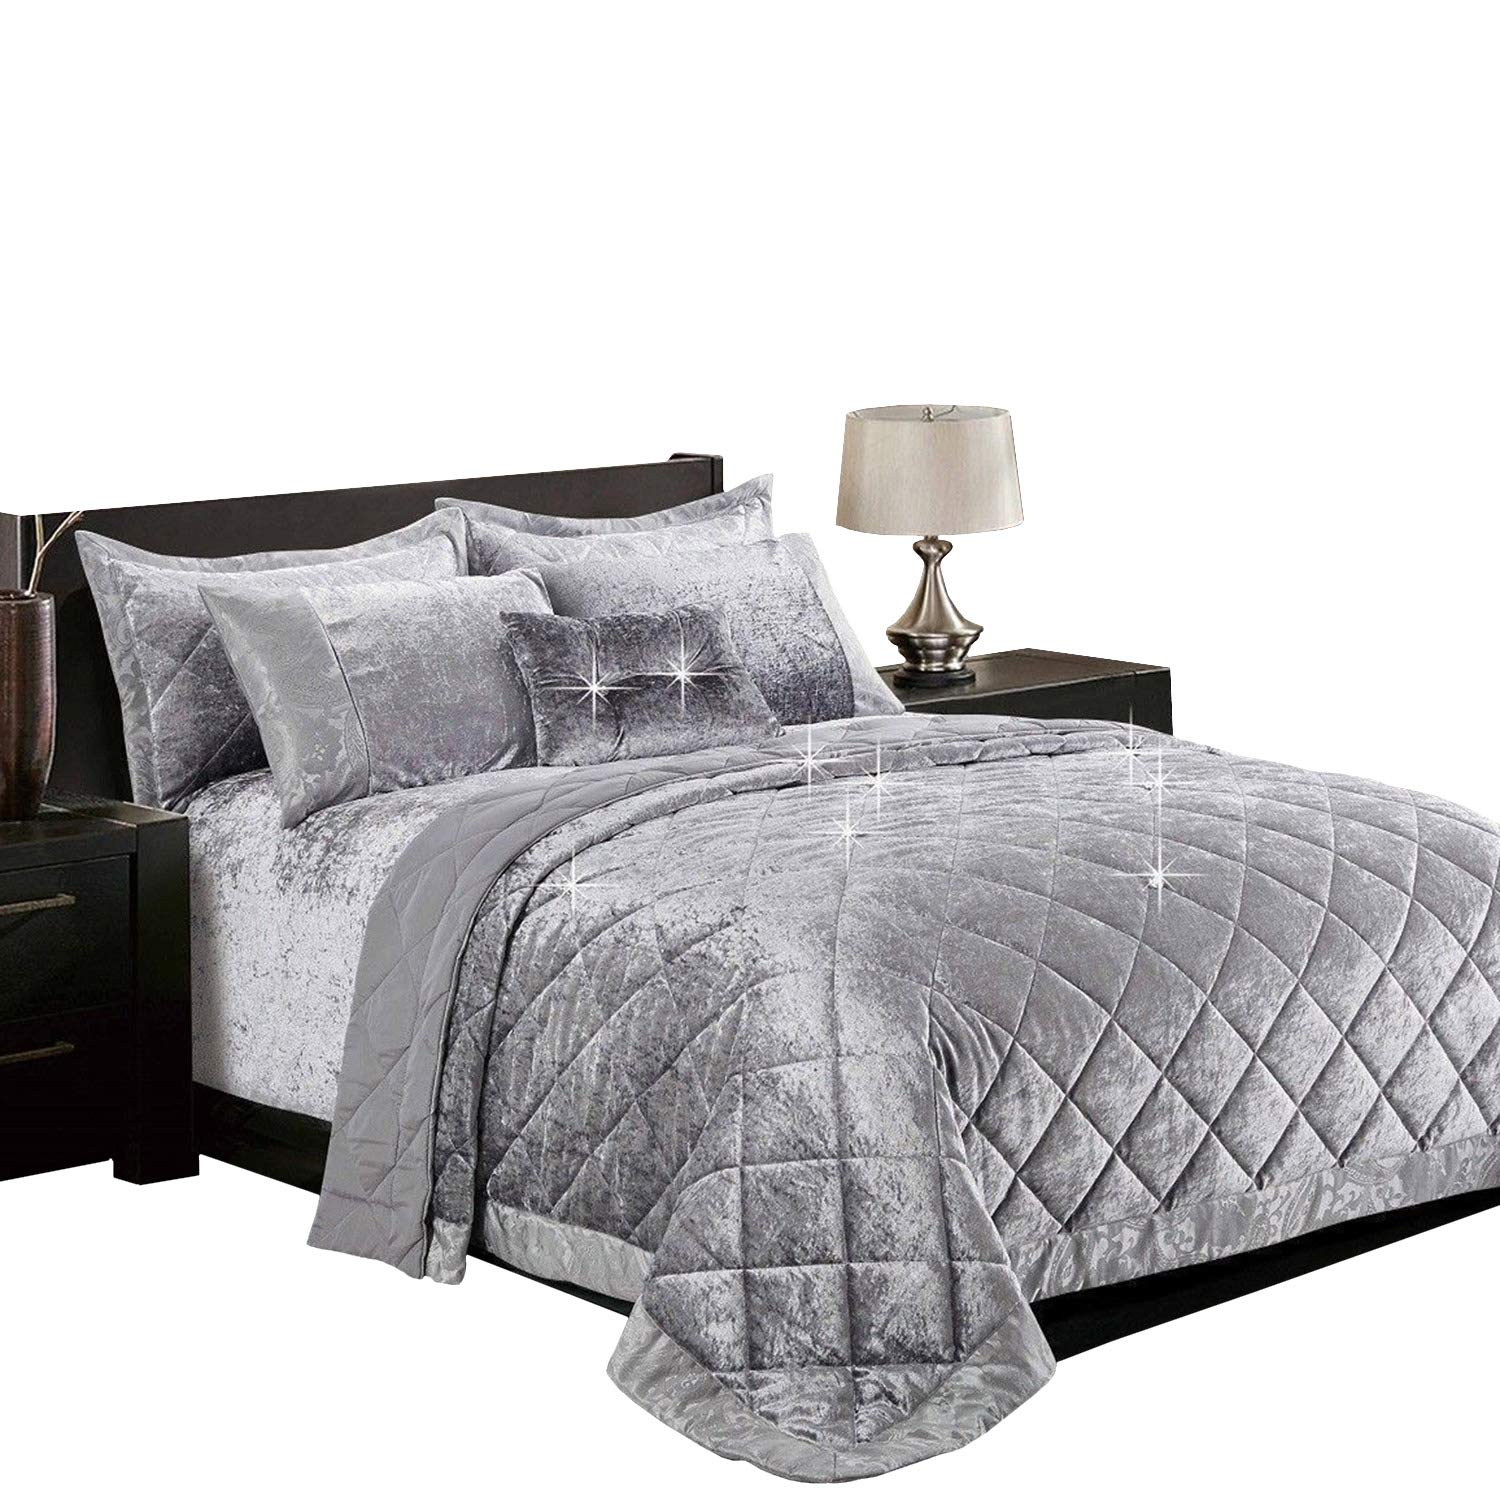 Luxurious 3PCS Jacquard Quilted Bedspread Single,Double,King,SuperKing 22 Colors